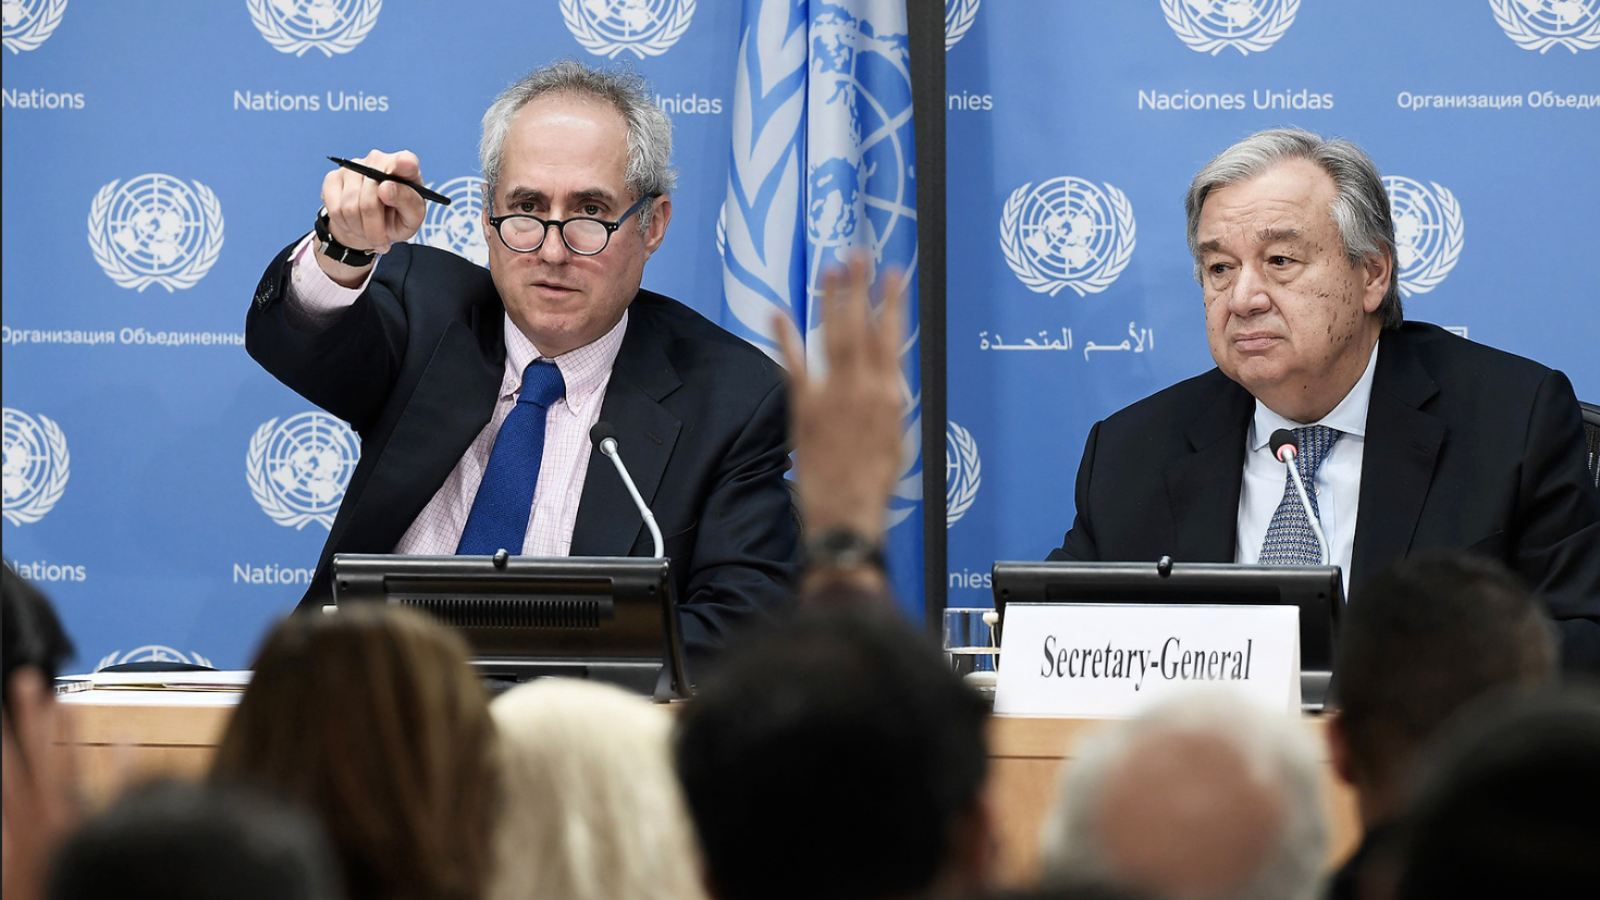 Stephane Dujarric and António Guterres take questions from a room of reporters.